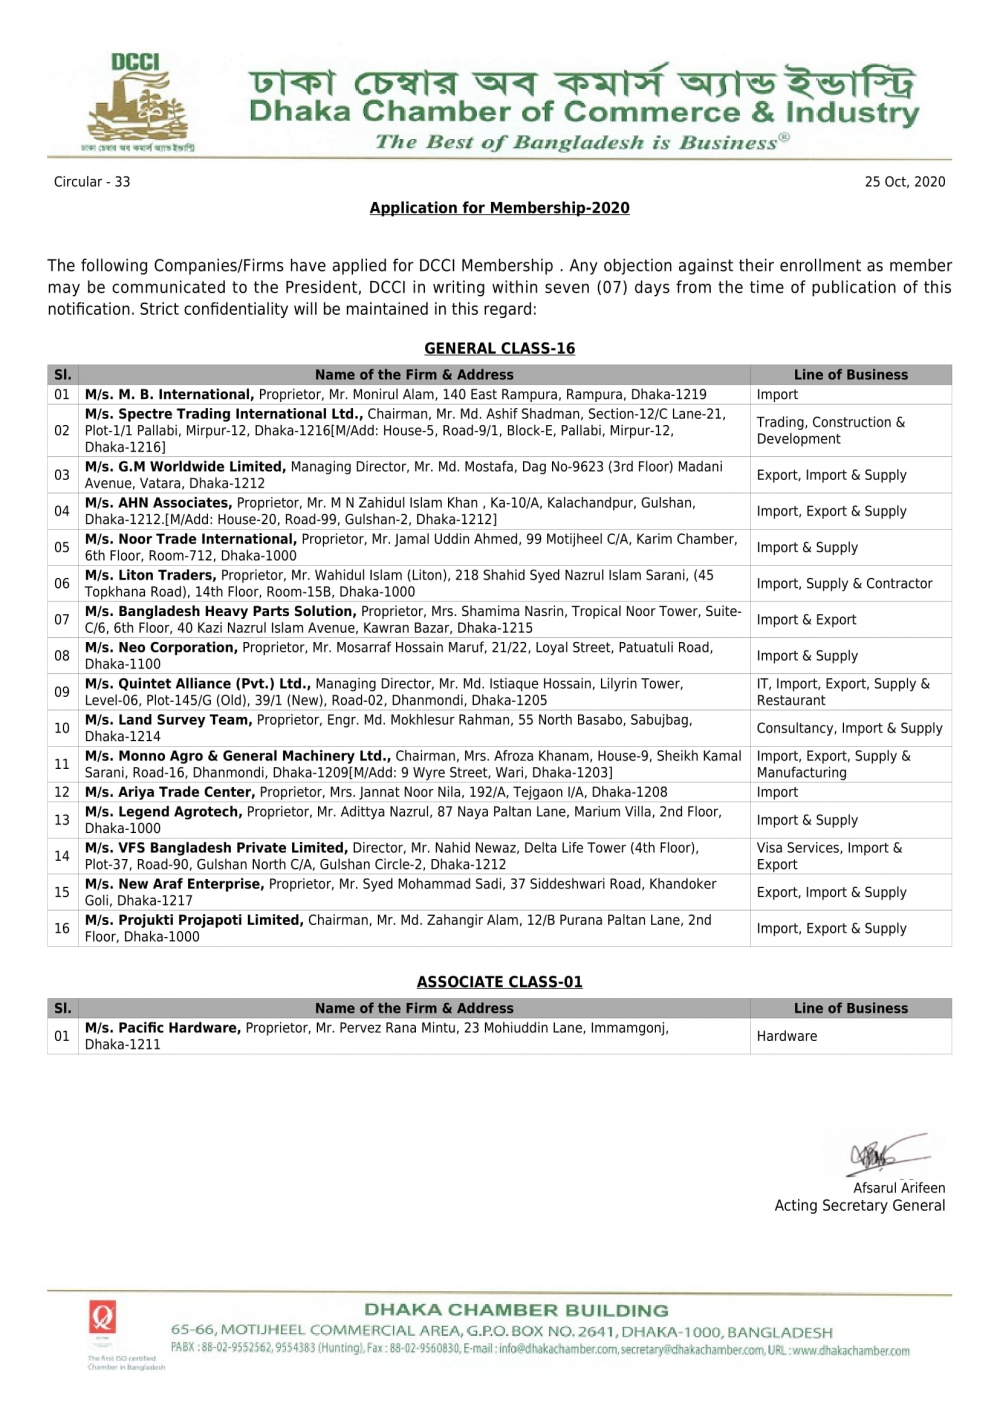 Application for Membership-2020 (Circular-33)